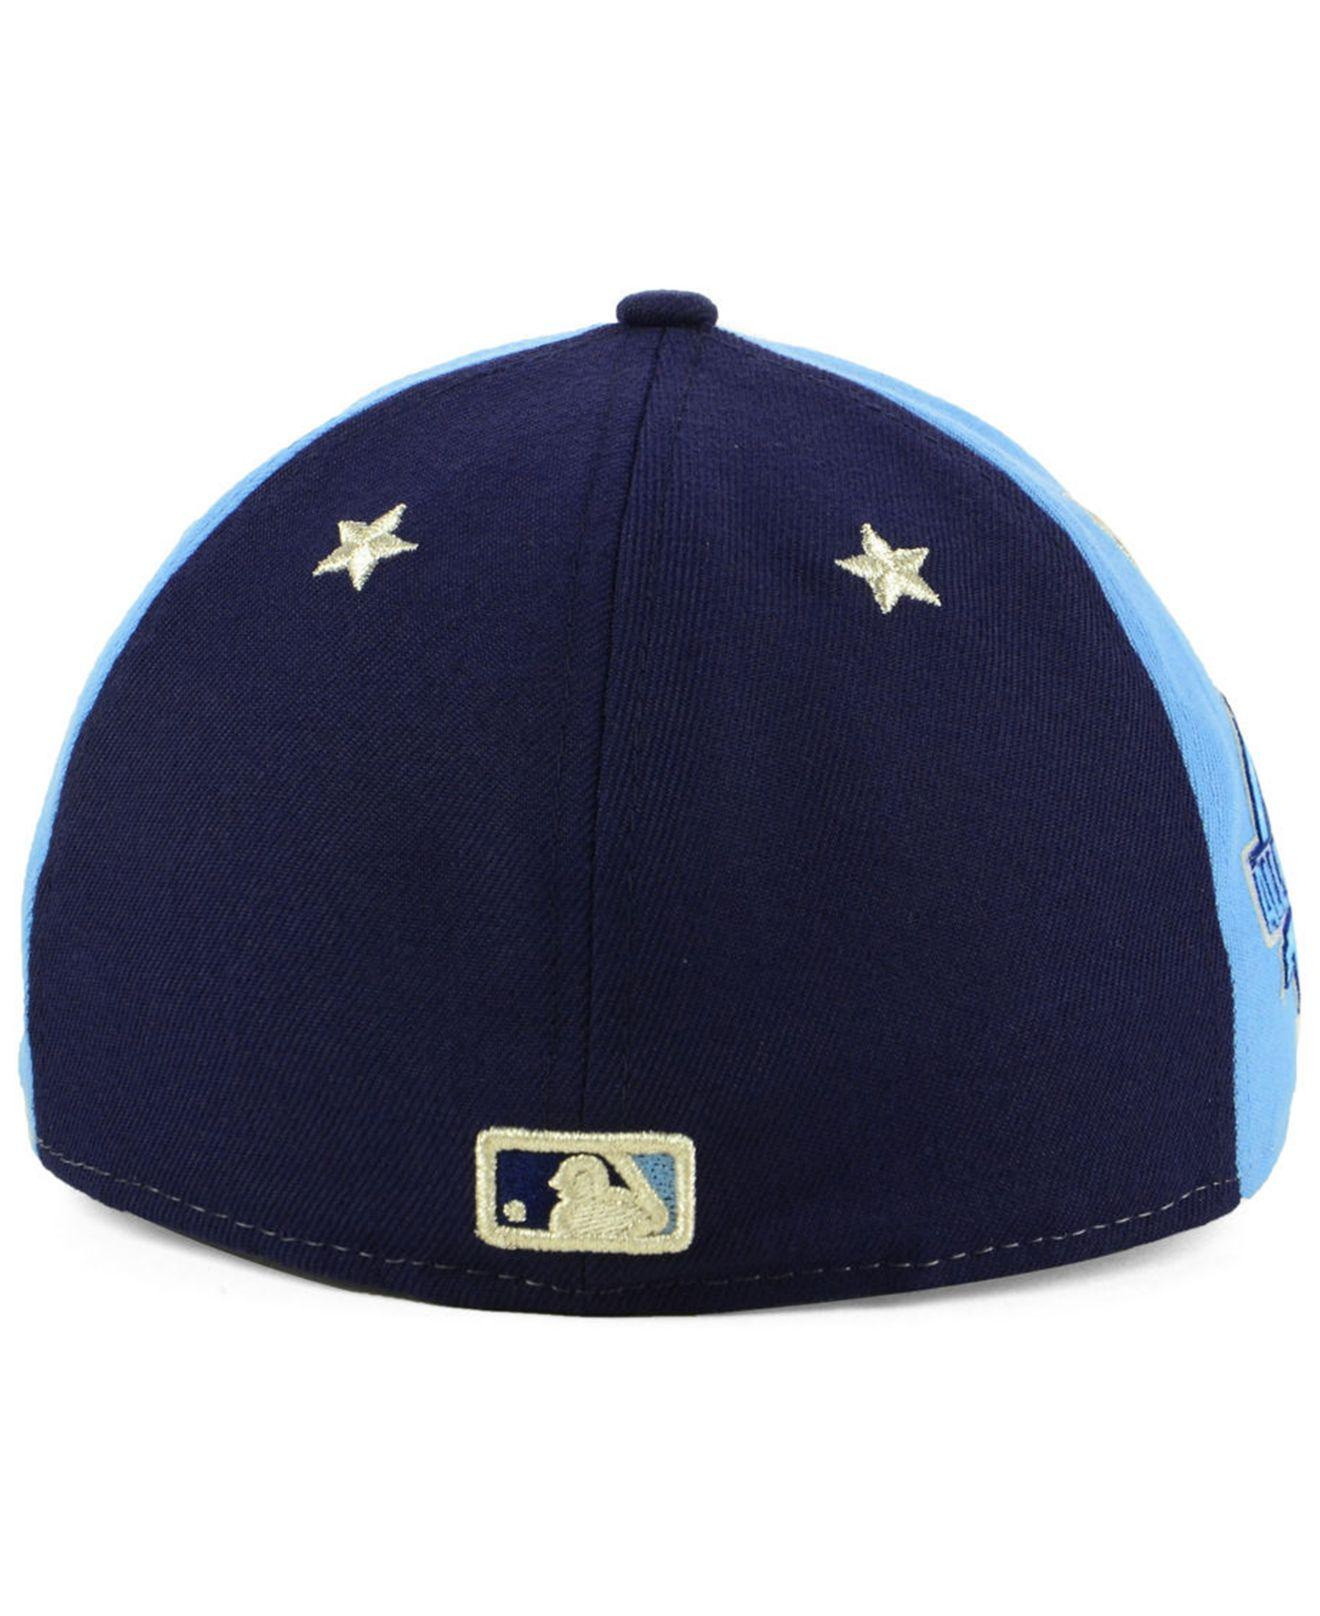 ... All Star Game Patch Low Profile 59fifty Fitted Cap 2018. View fullscreen ab9fb5d81e80